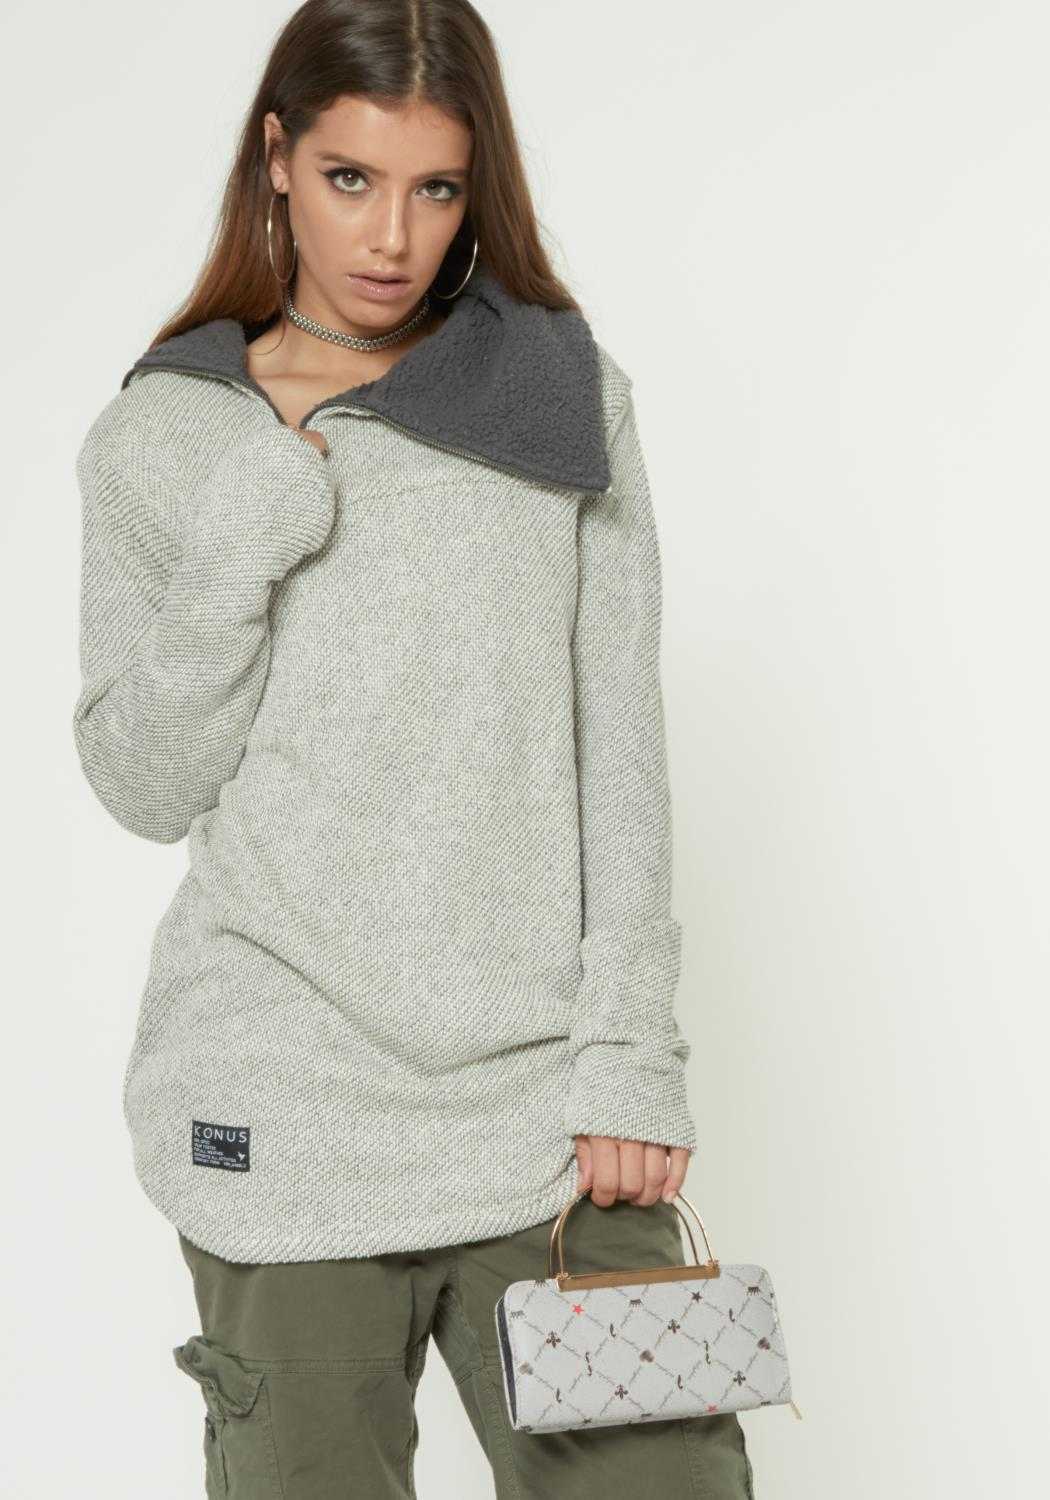 HEAVY TERRY MOCK NECK SWEATSHIRT